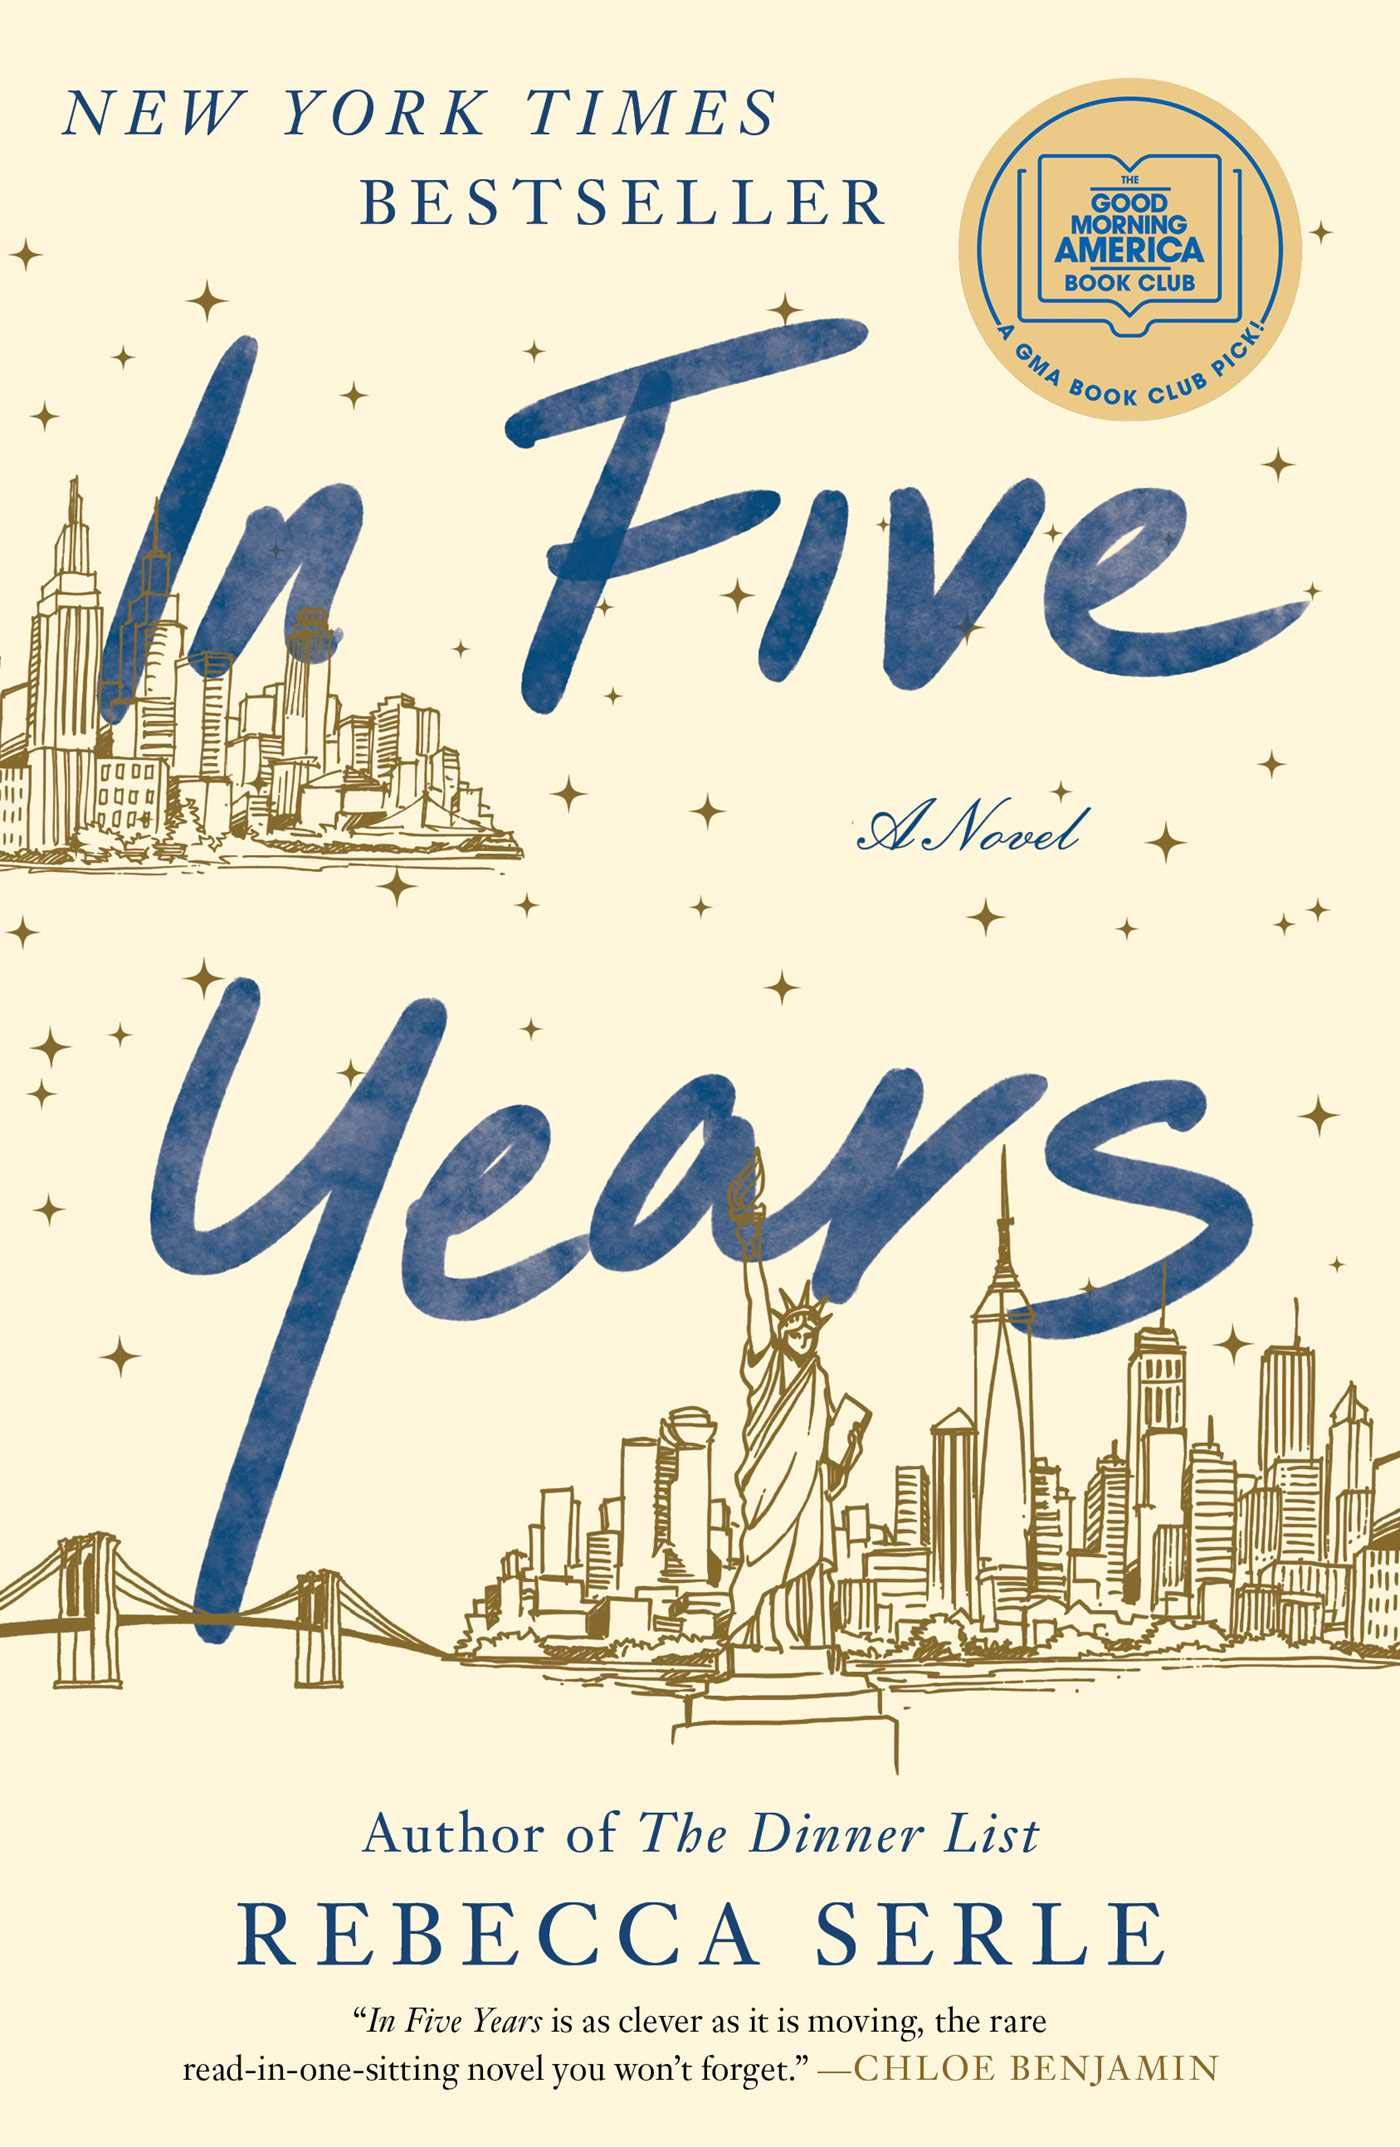 In Five Years by Rebecca Serle cover